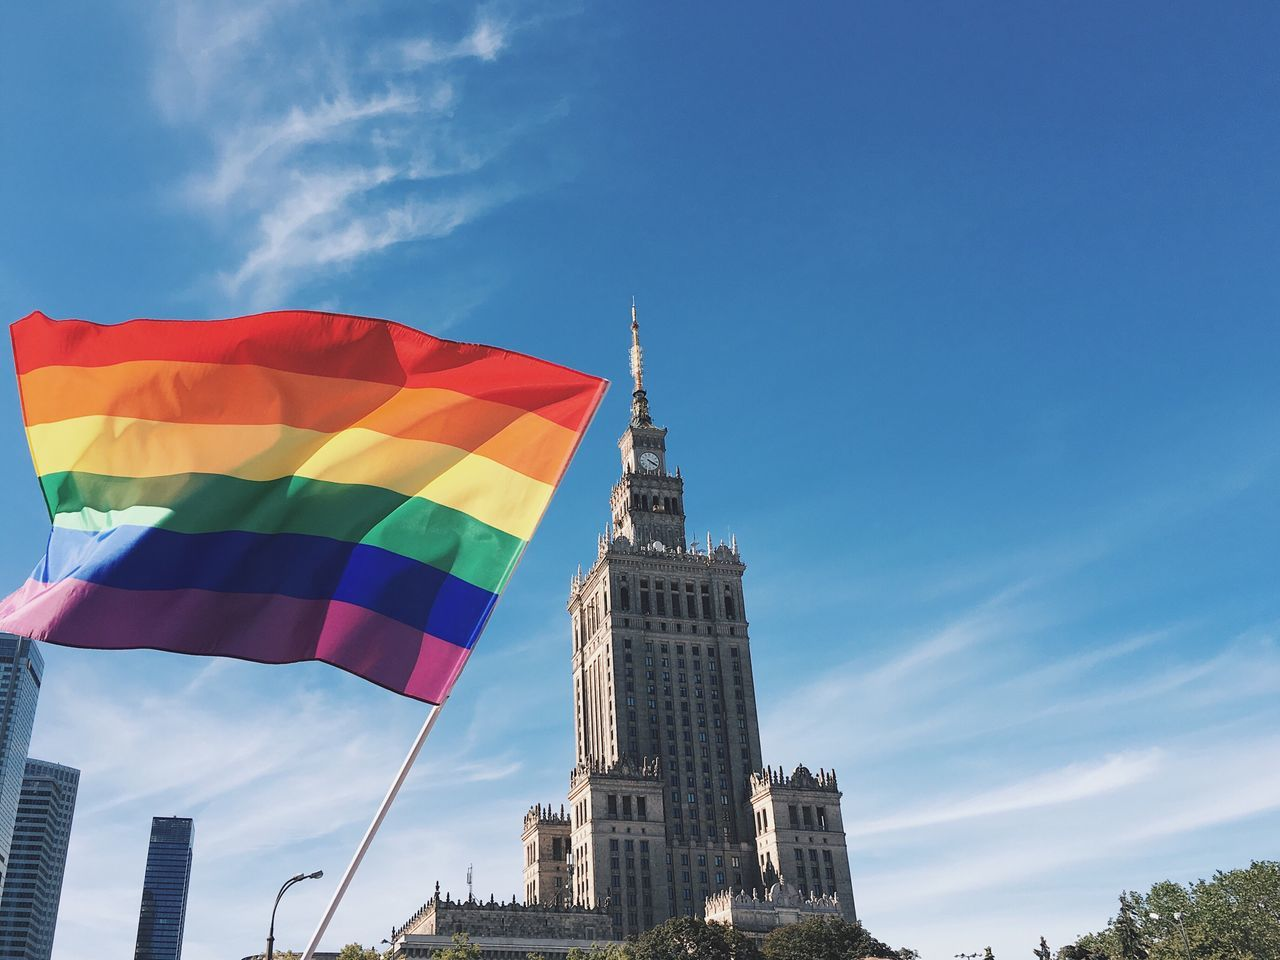 Flag Architecture Sky Built Structure Building Exterior Day Multi Colored Low Angle View Cloud - Sky Outdoors No People Blue City Gay Pride Warsaw